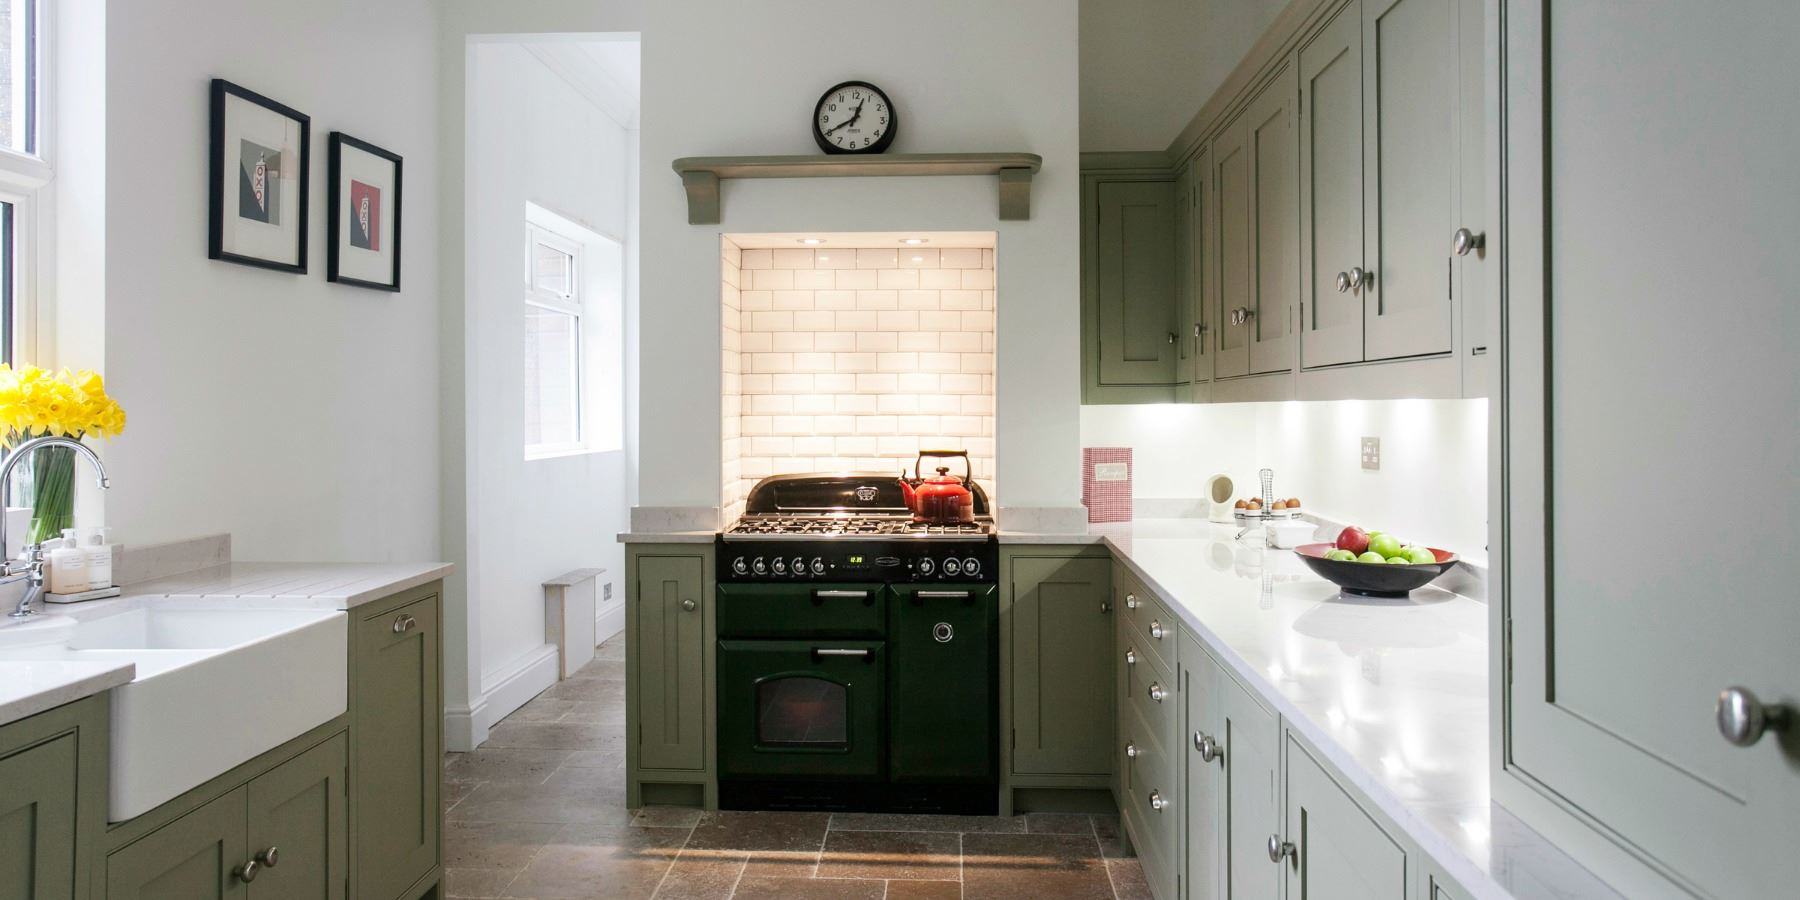 Burlanes Interiors - Country kitchen Burlanes style